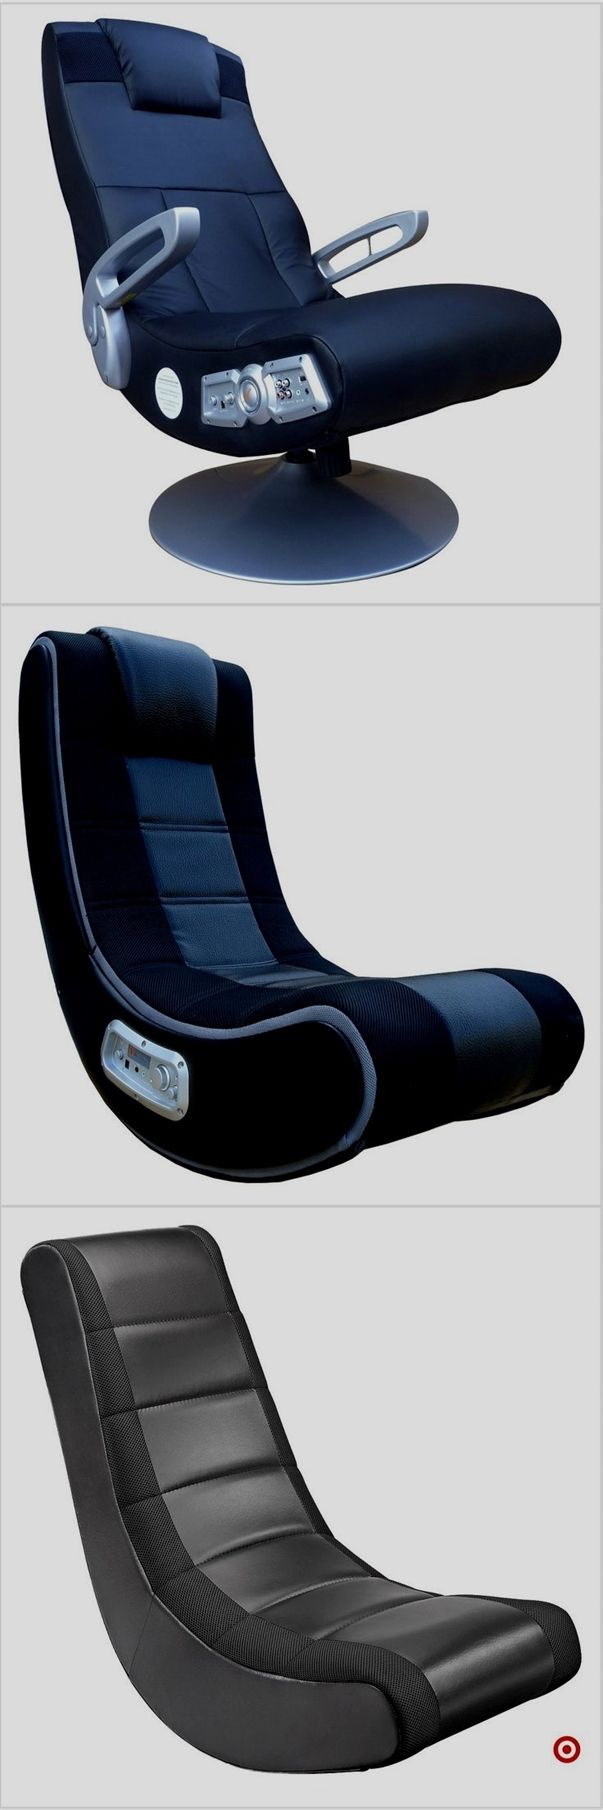 The 10 super Gaming Chairs models. Best character game chair Design. Shop Target for gaming chair you will love at great low prices. Free shipping u2026 & The 10 super Gaming Chairs models. Best character game chair Design ...